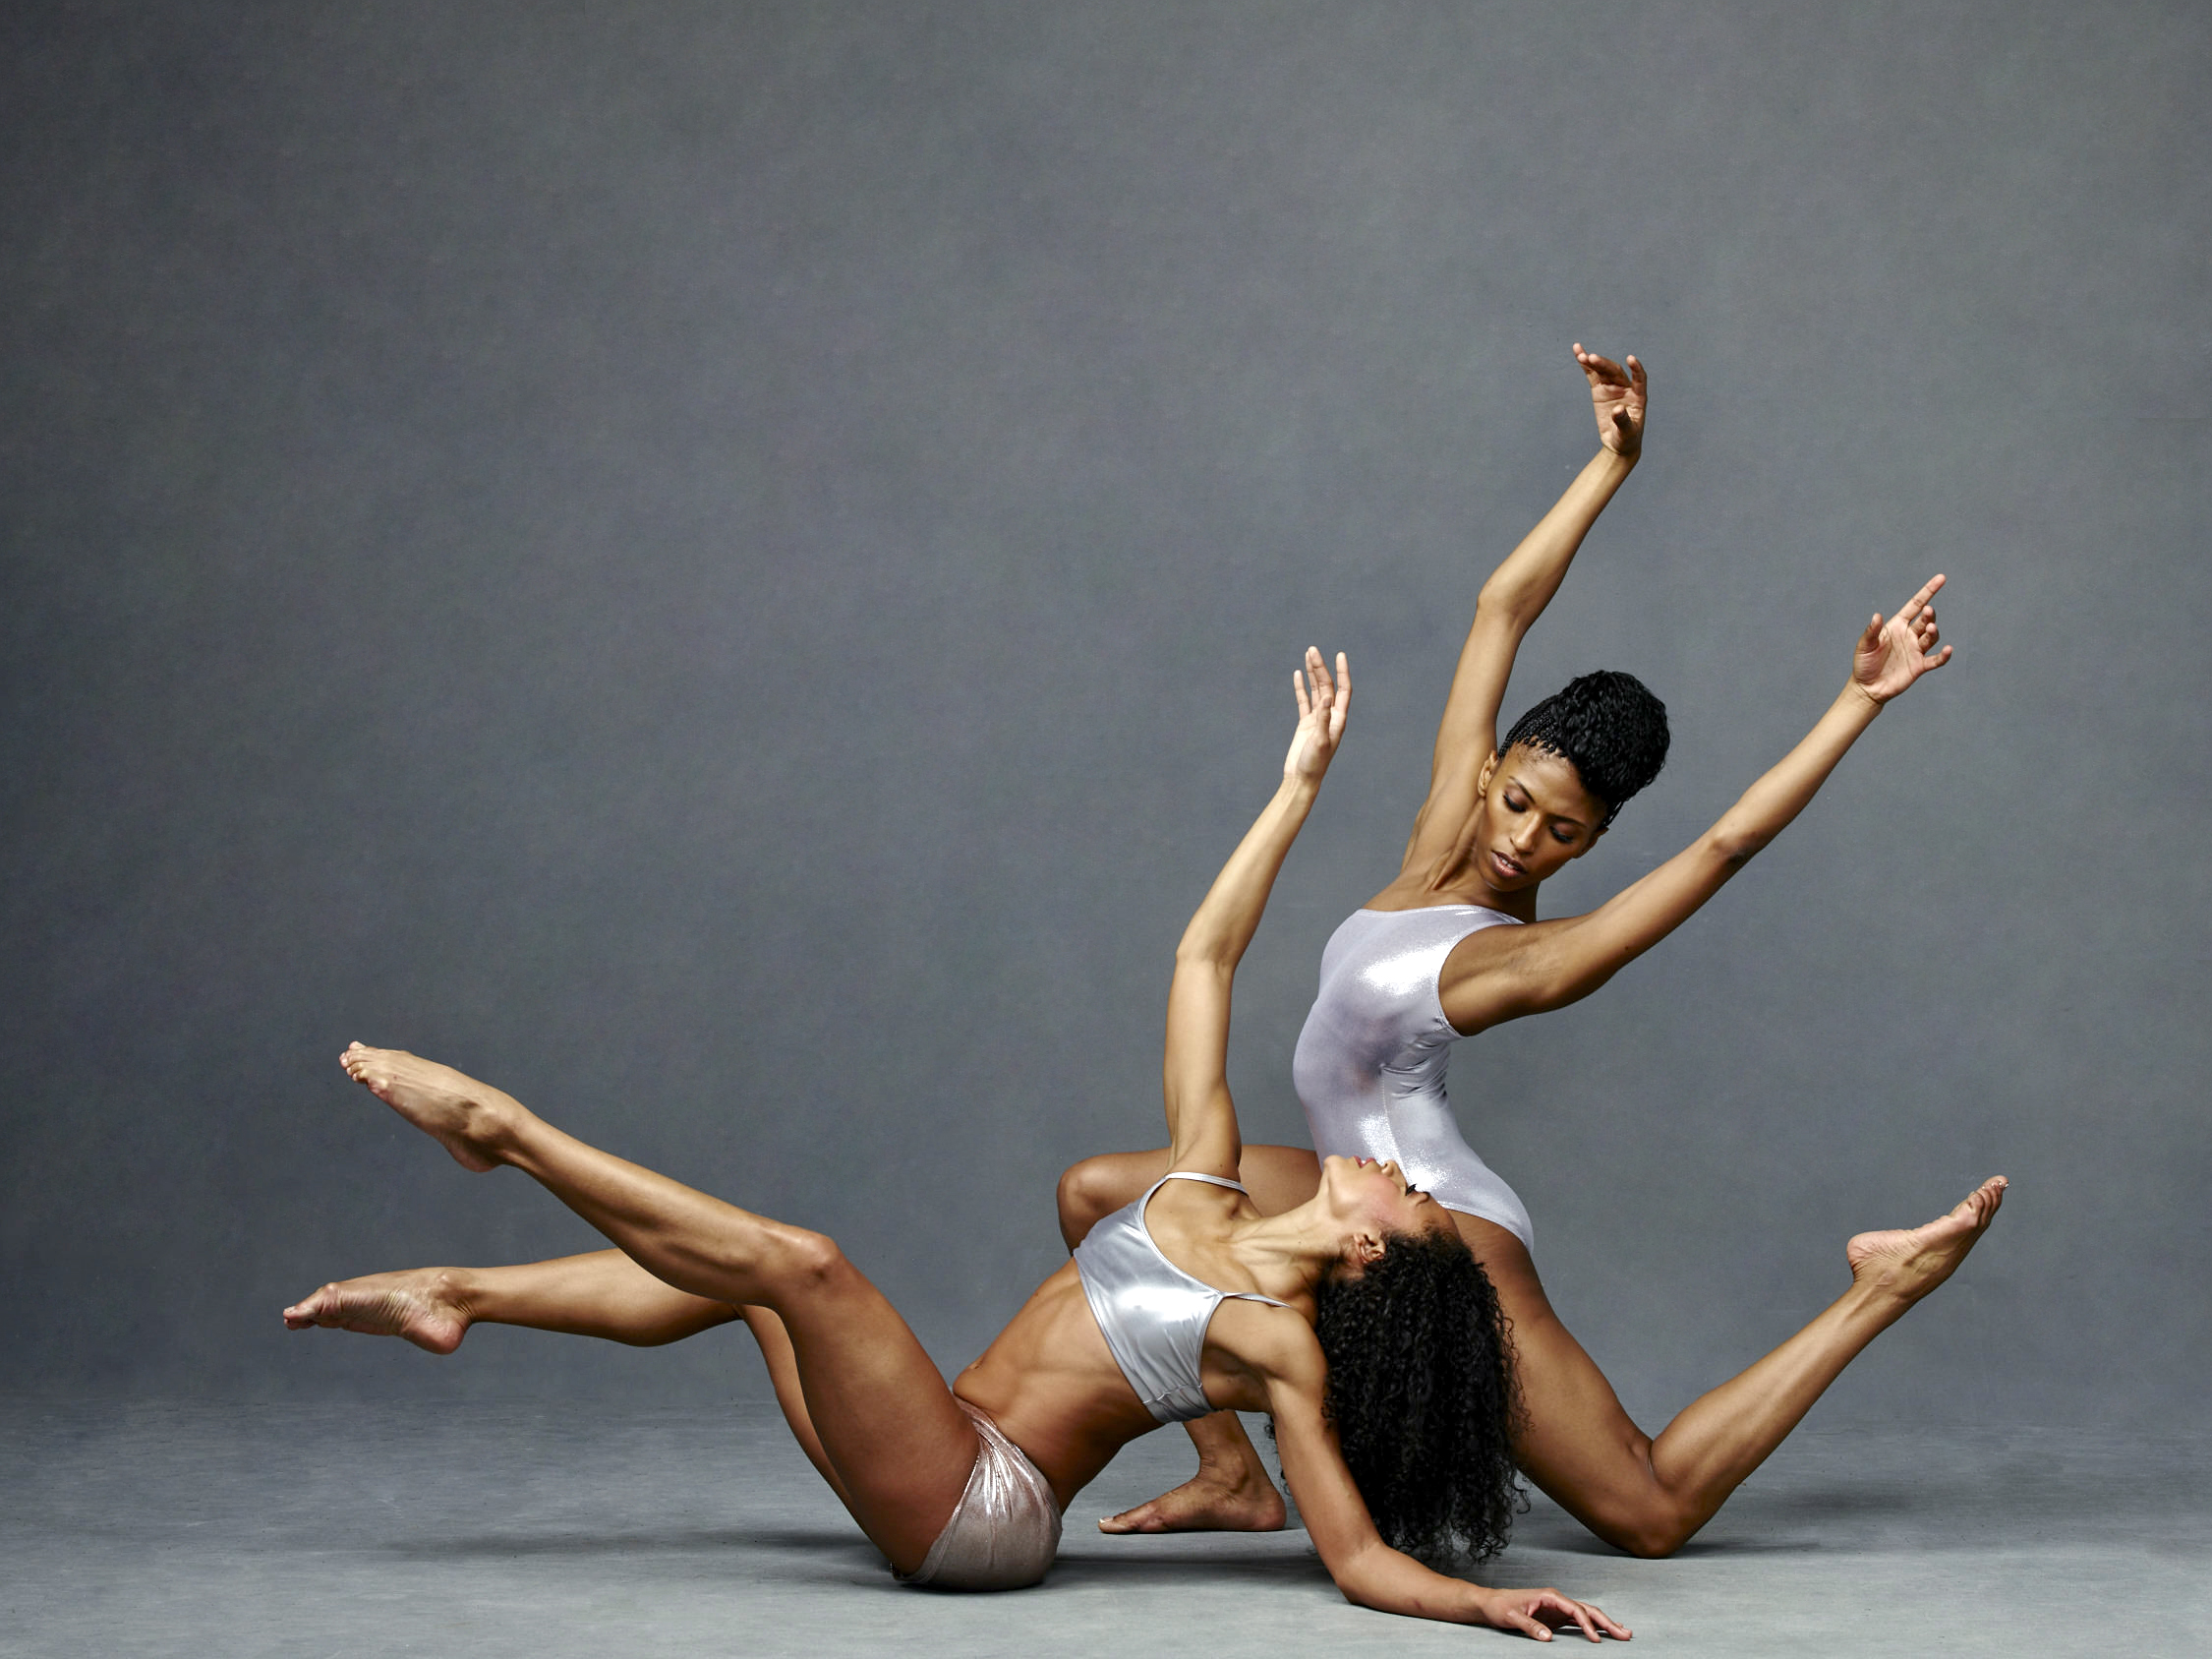 alvin ailey american dance theatre Alvin ailey american dance theater cultural ambassadors to the world beloved by detroit audiences, alvin ailey american dance theater brings four performances of its masterful artistry and expansive repertory, including their signature work revelations, to the detroit opera house be inspired and experience some of the best-loved work by the.